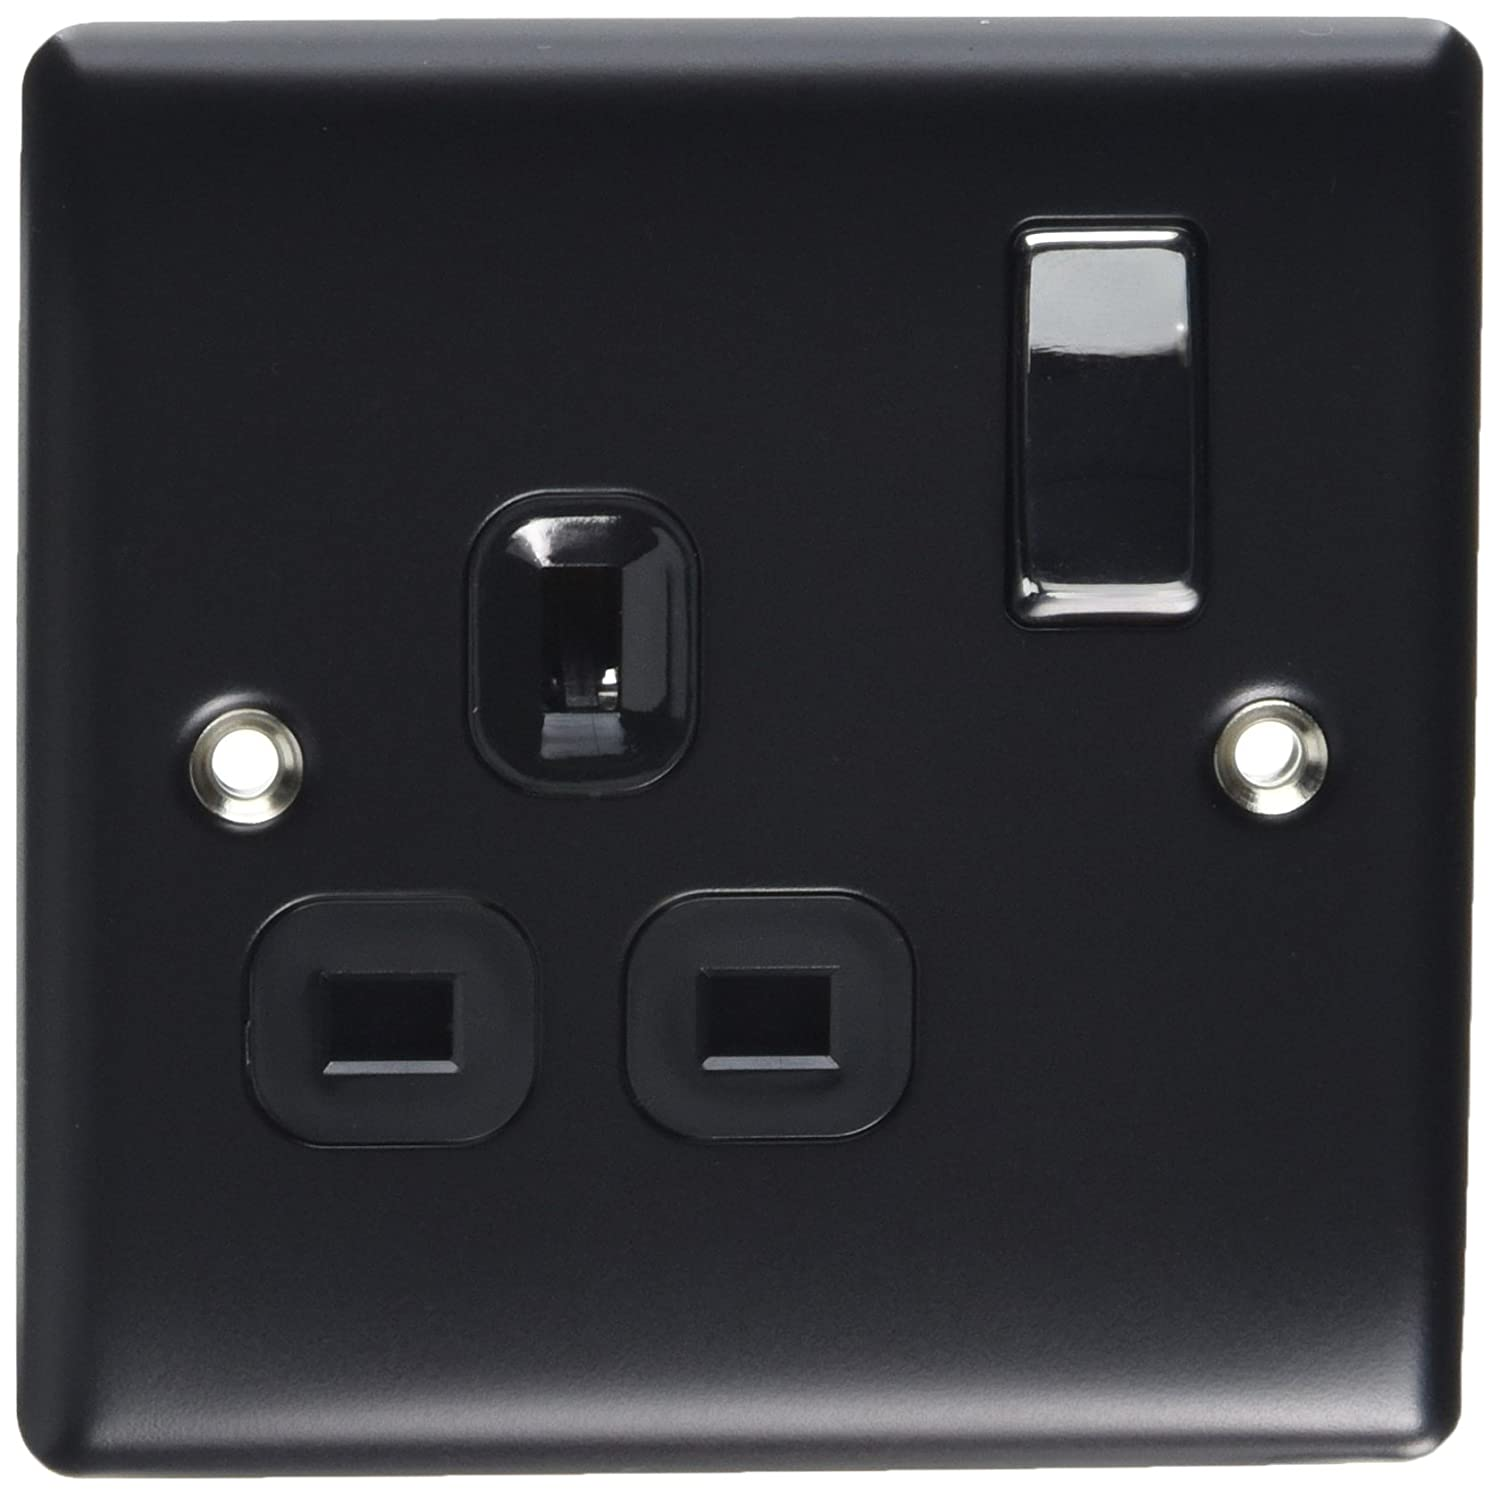 BG Electrical NBS21W 13amp Double Metal Brushed Steel Switched Power Socket White Insert